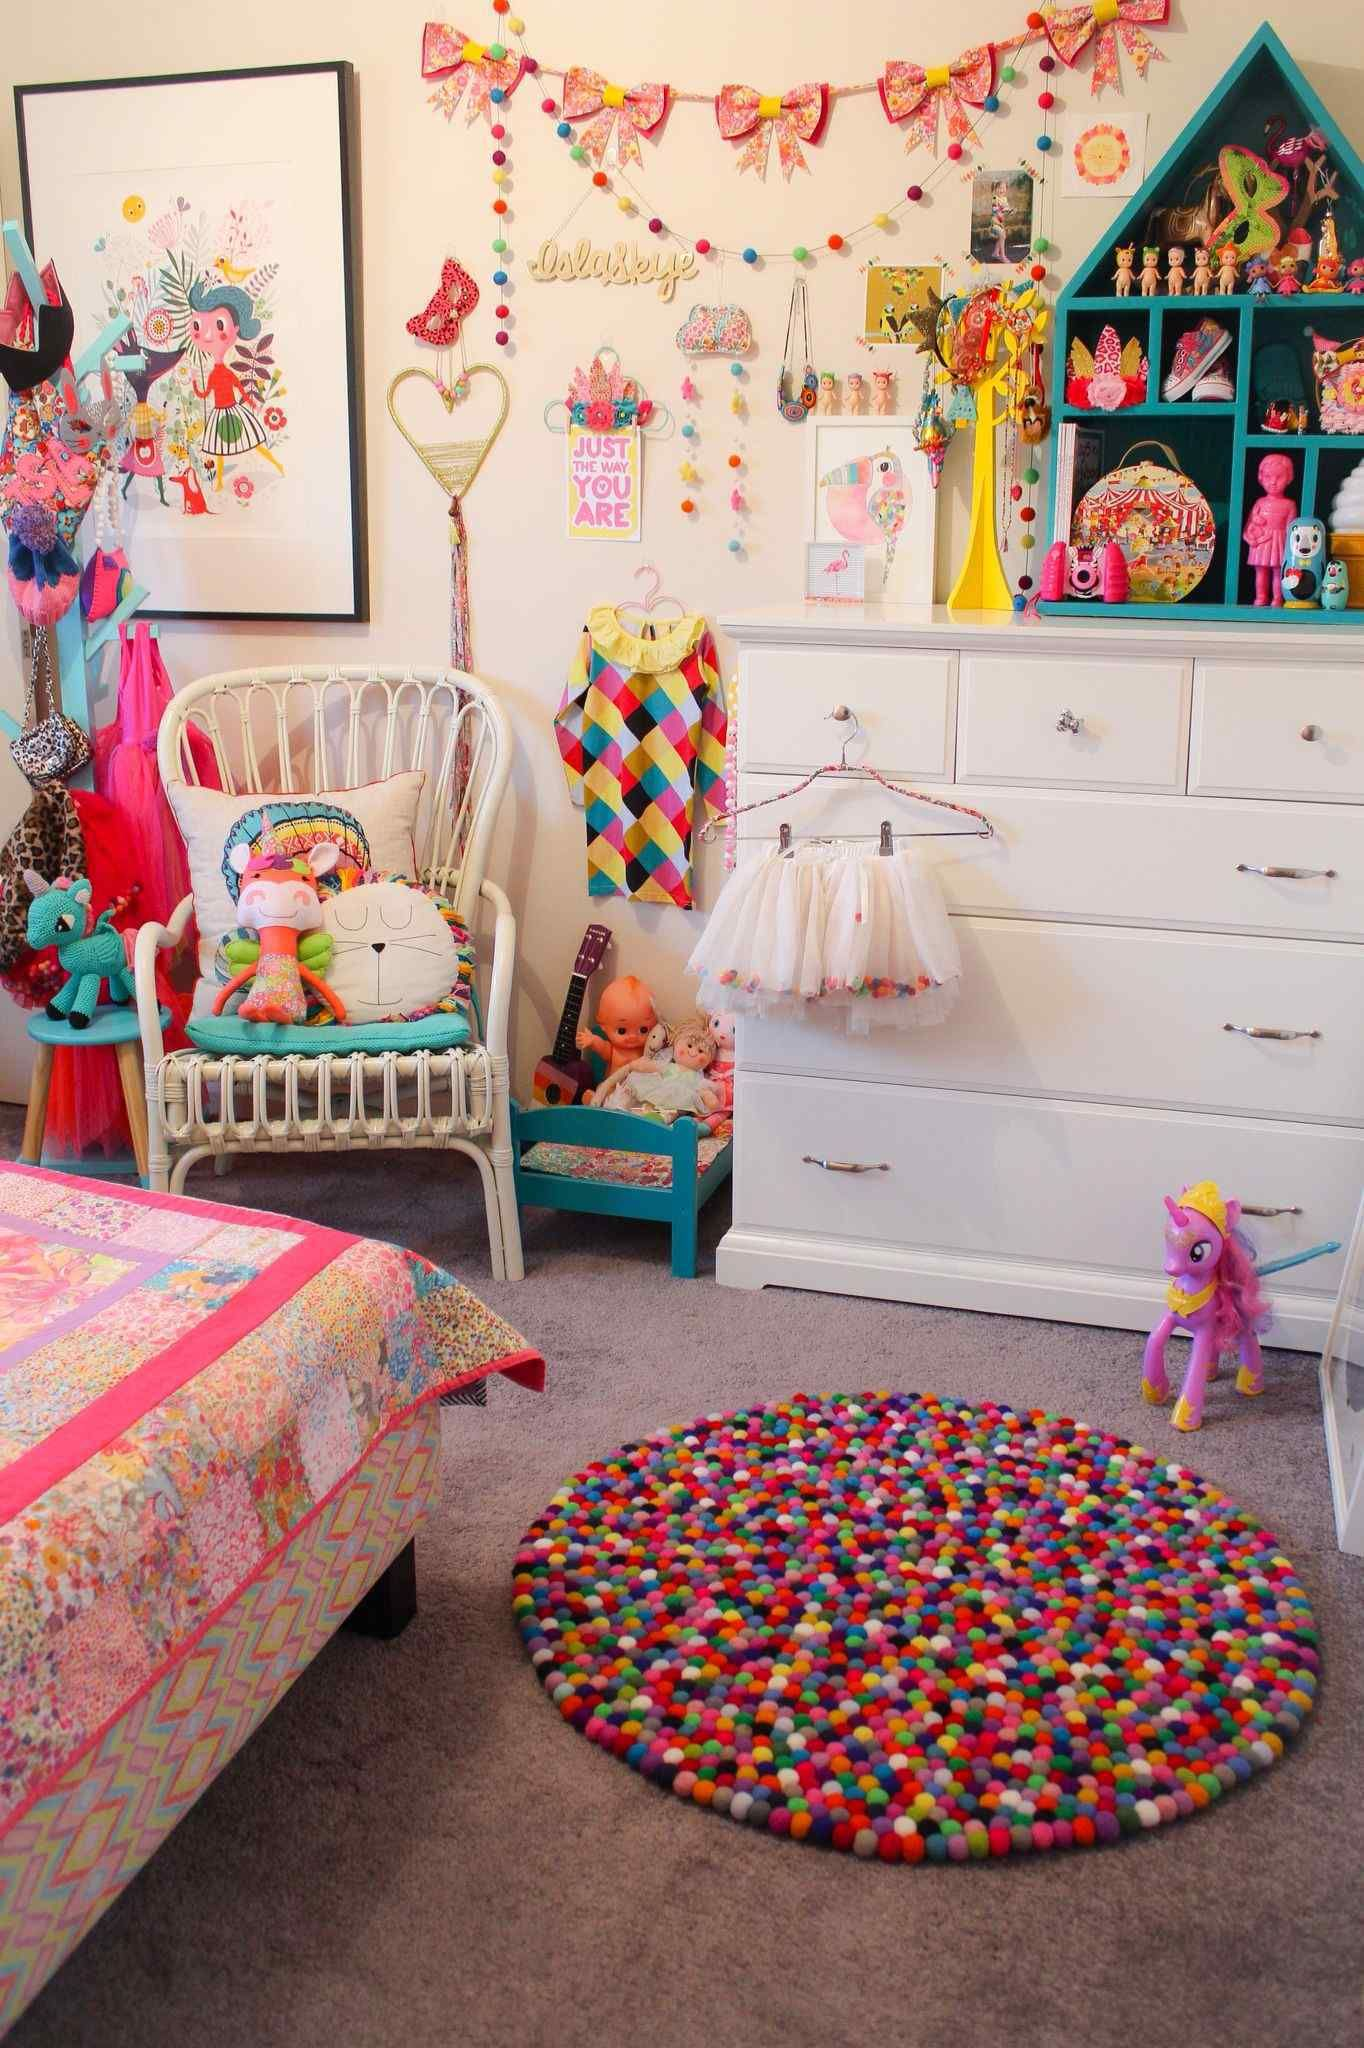 Things Your Elegant Unicorn Bedroom Ideas Kid Rooms Diy Doesnu0027t Tell You  Canberkarac.com